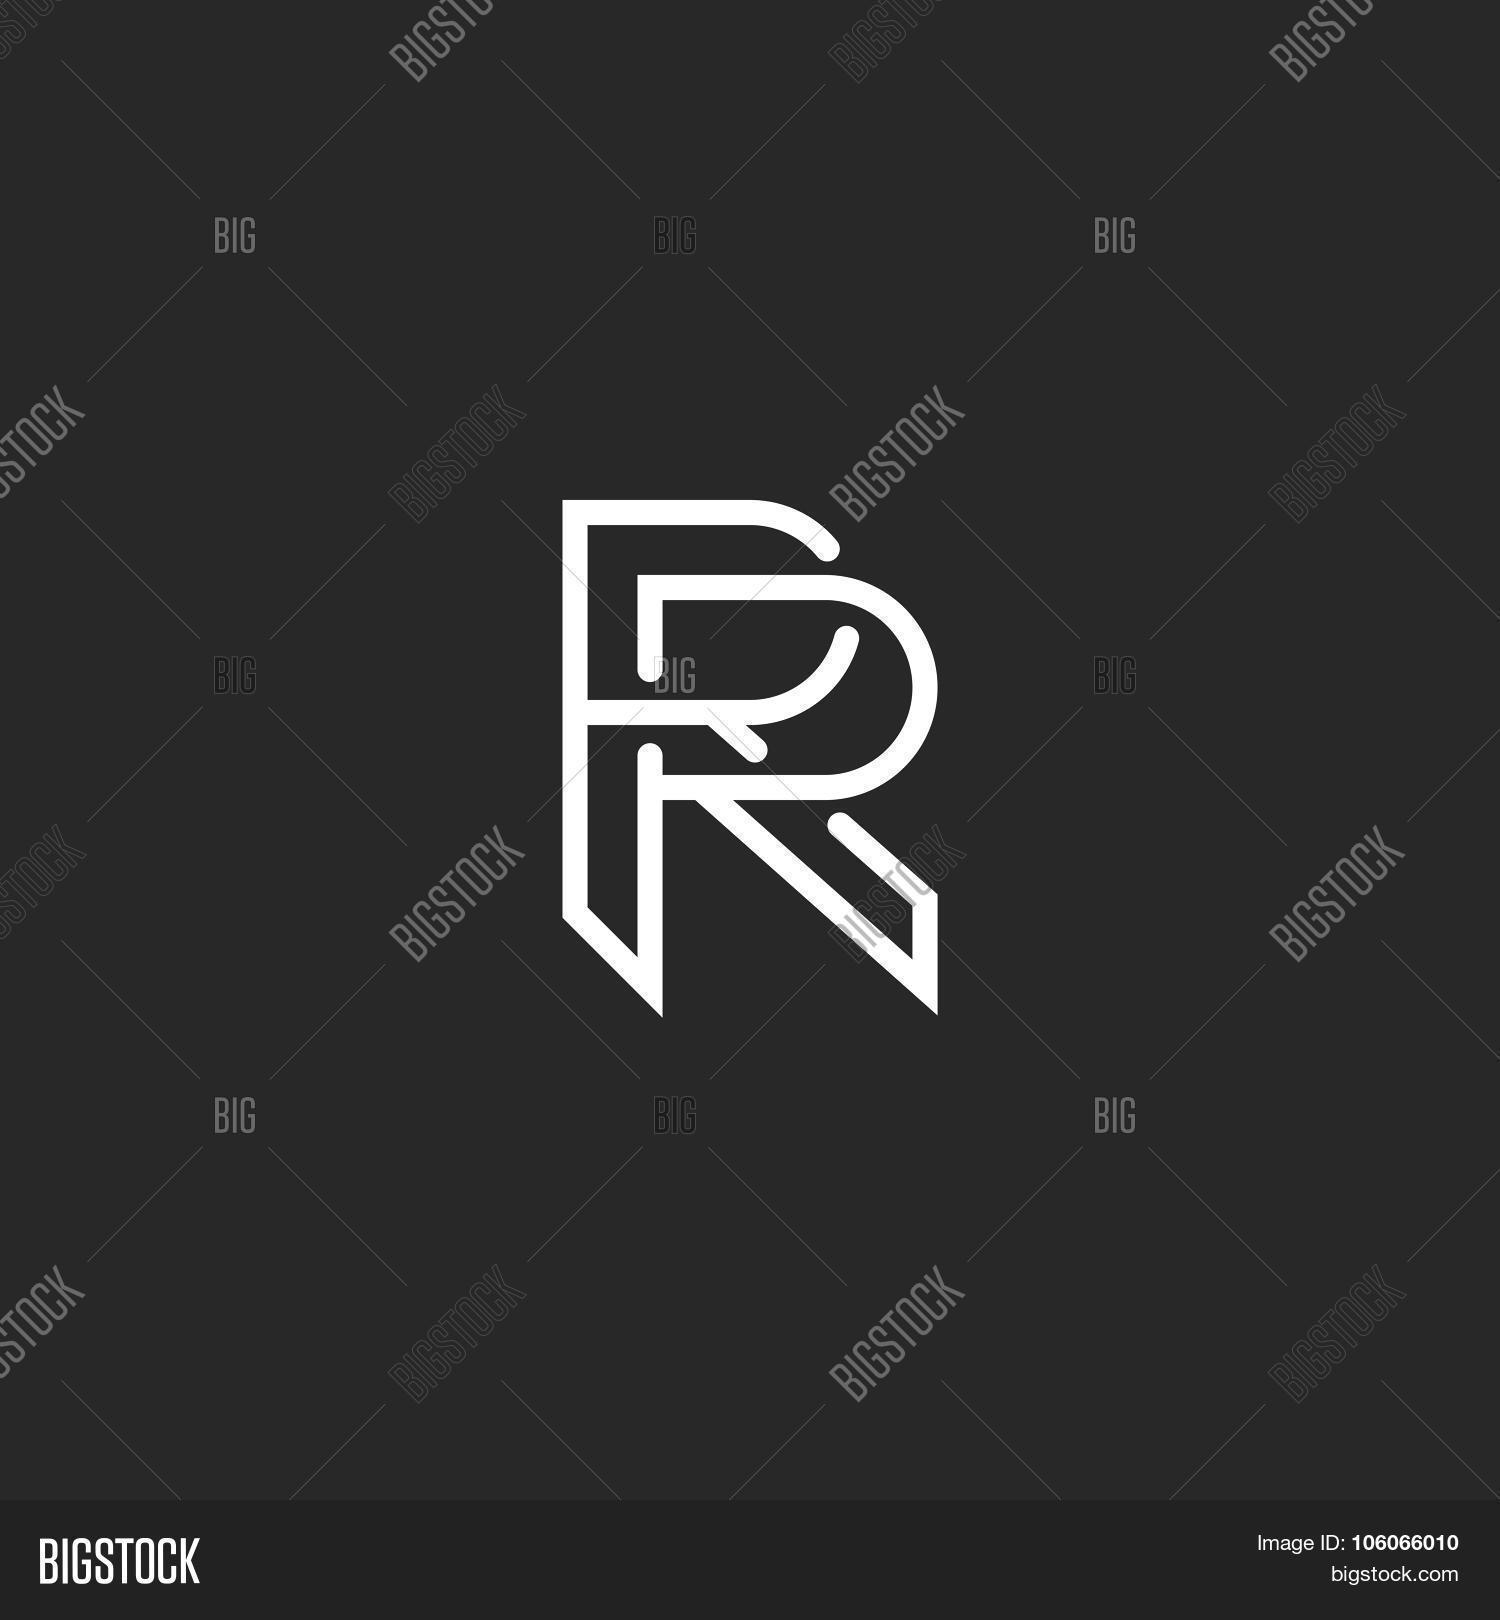 letter r logo monogram mockup hipster black and white design element wedding invitation template